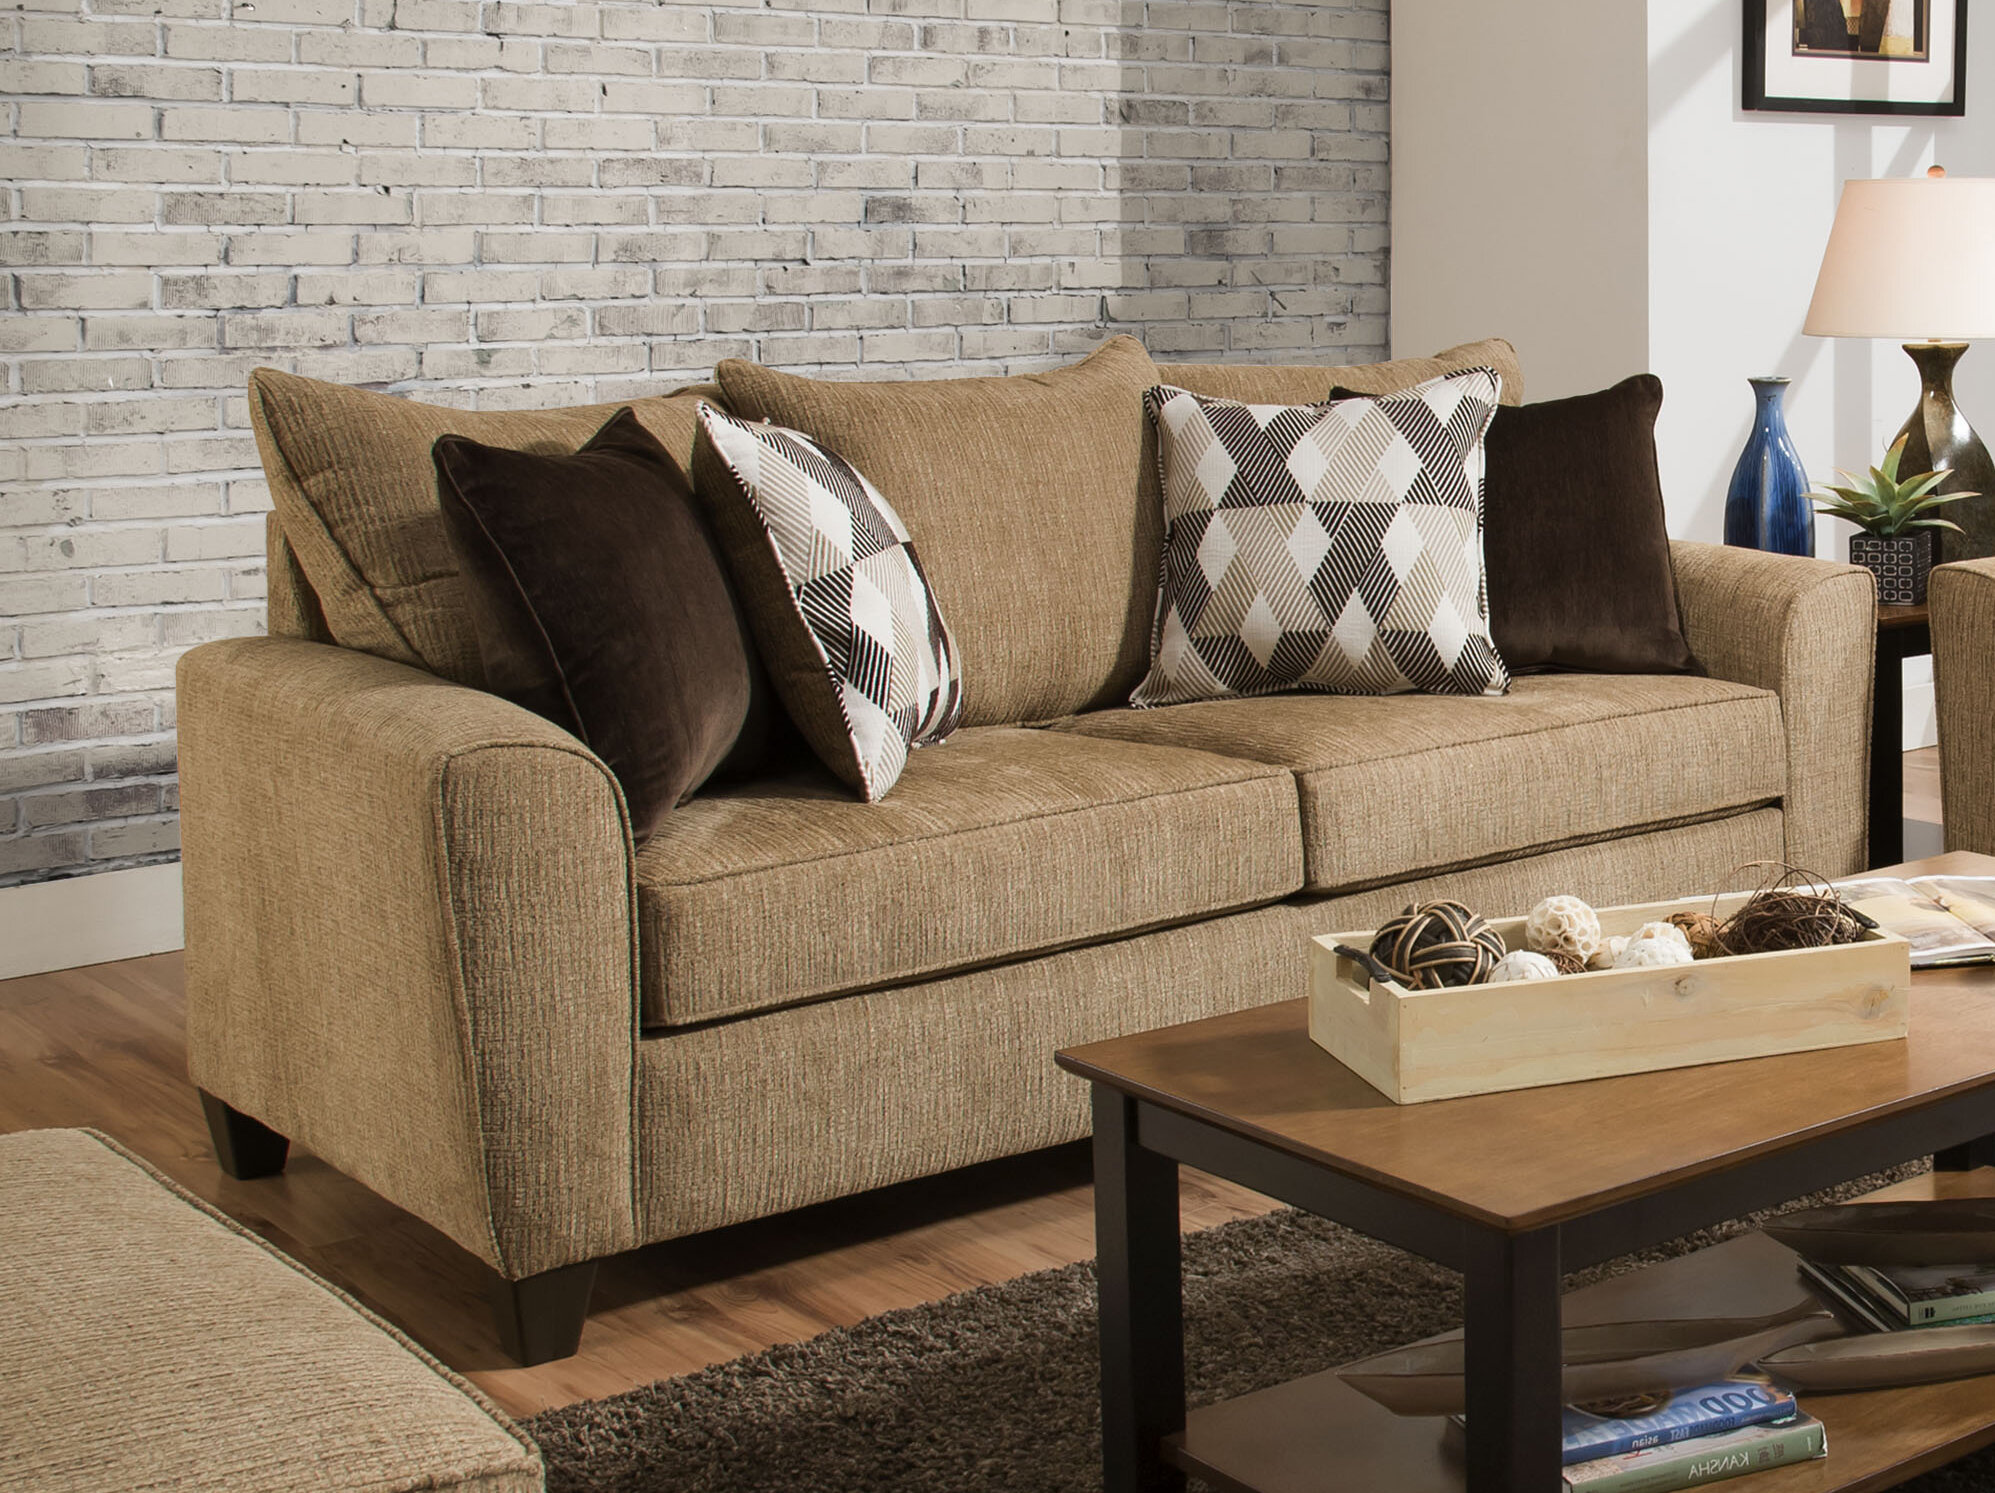 Surprising Amalfi Sofa Bed Sleeper Uwap Interior Chair Design Uwaporg